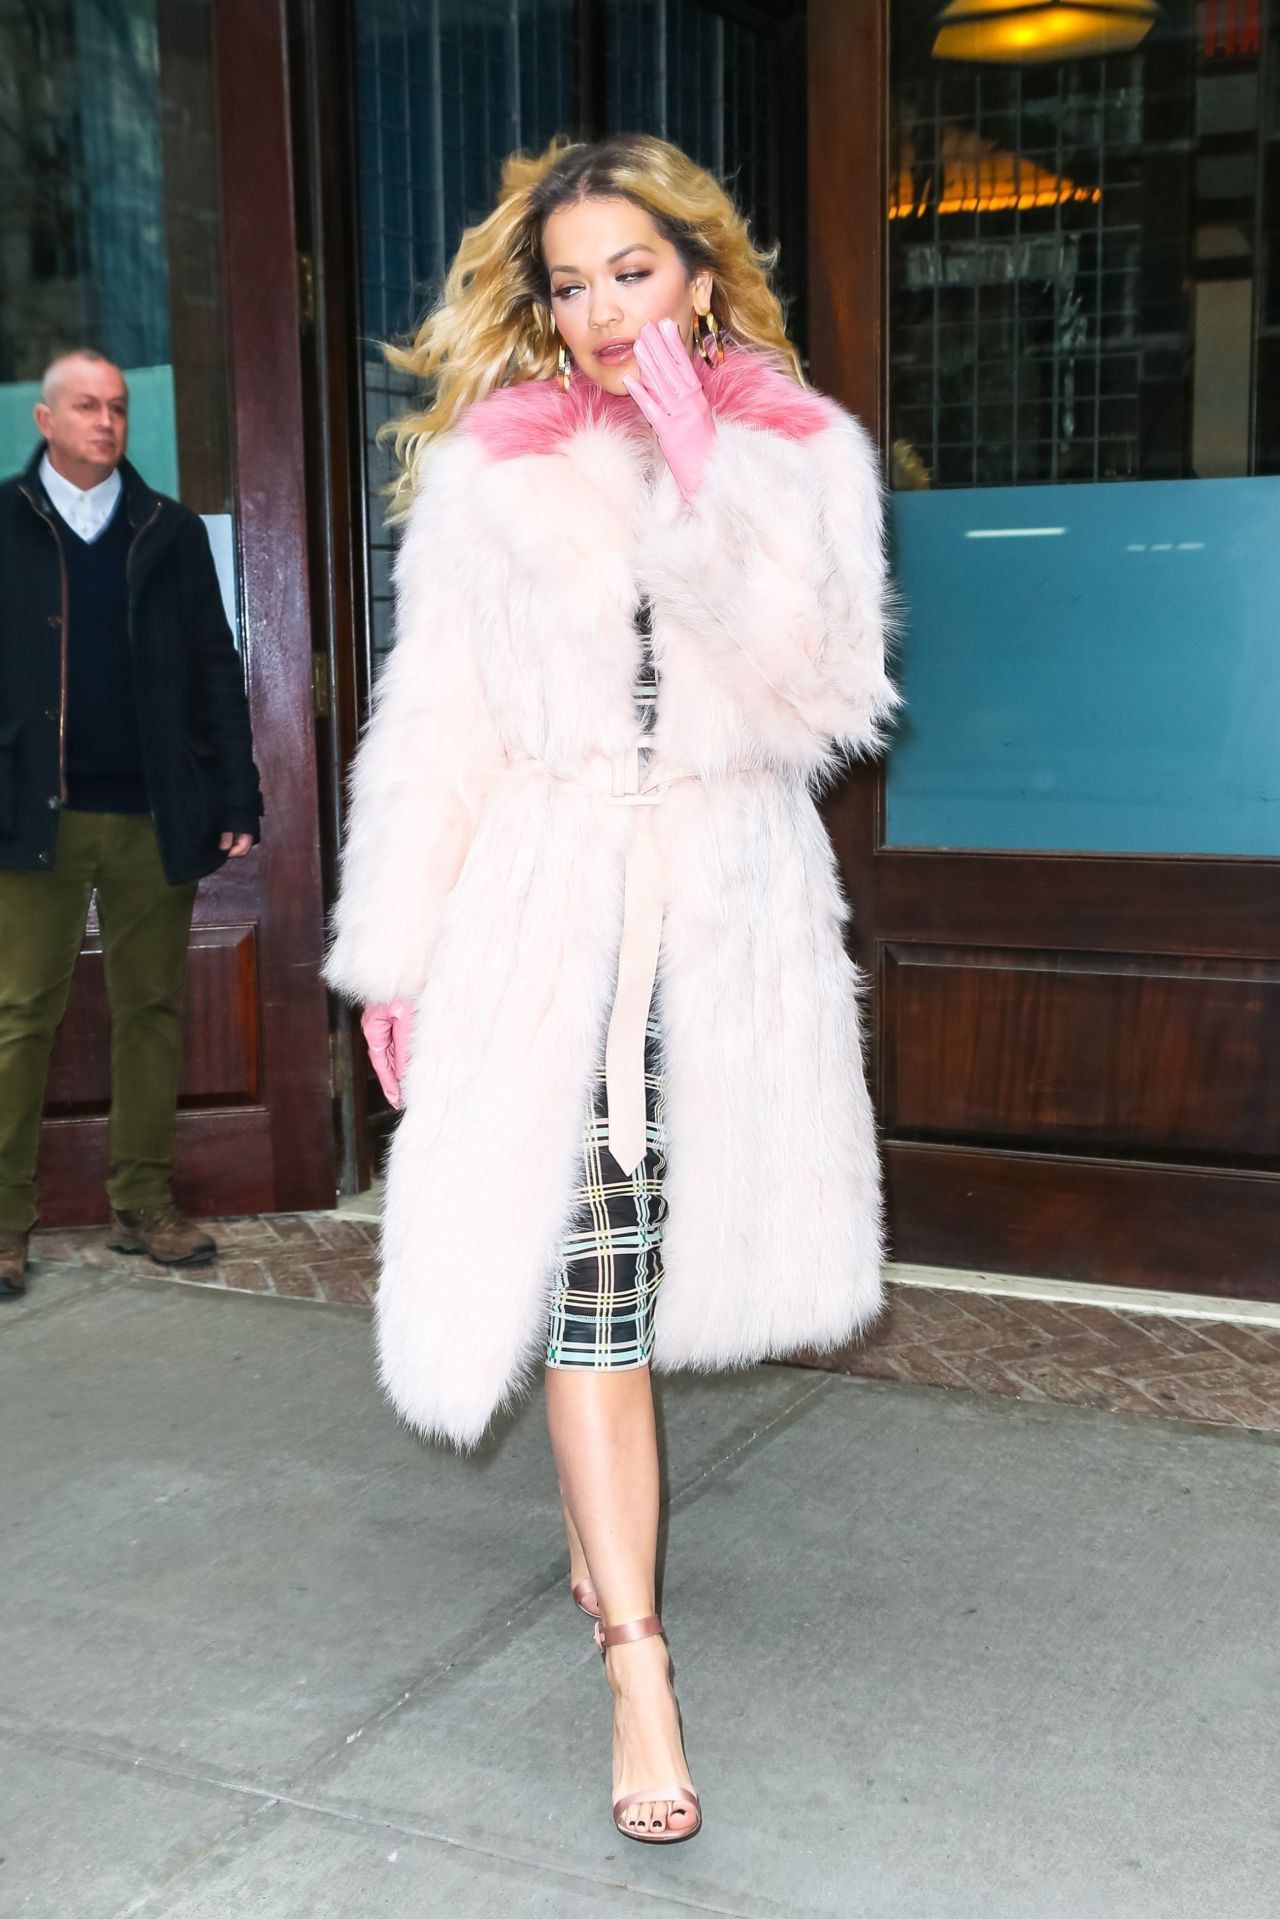 Rita Ora In A Pink Fur Coat With Pink Gloves Heads To The